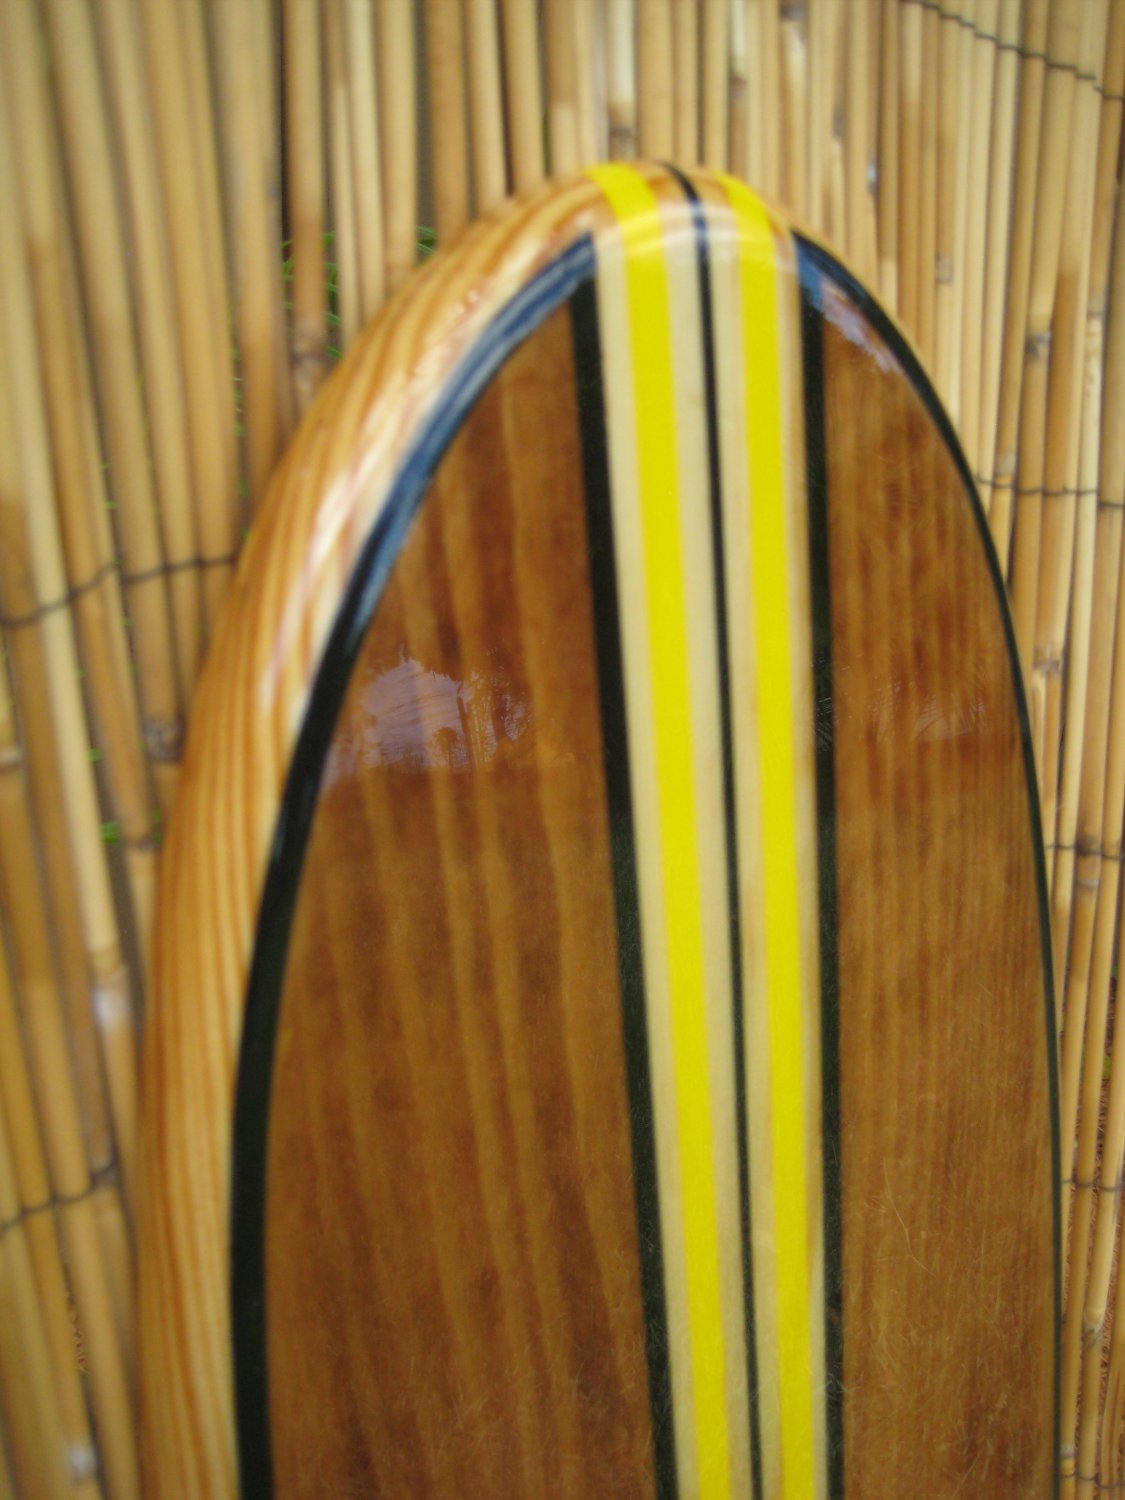 Outstanding Decorative Surfboards To Hang On Wall Pictures - The ...